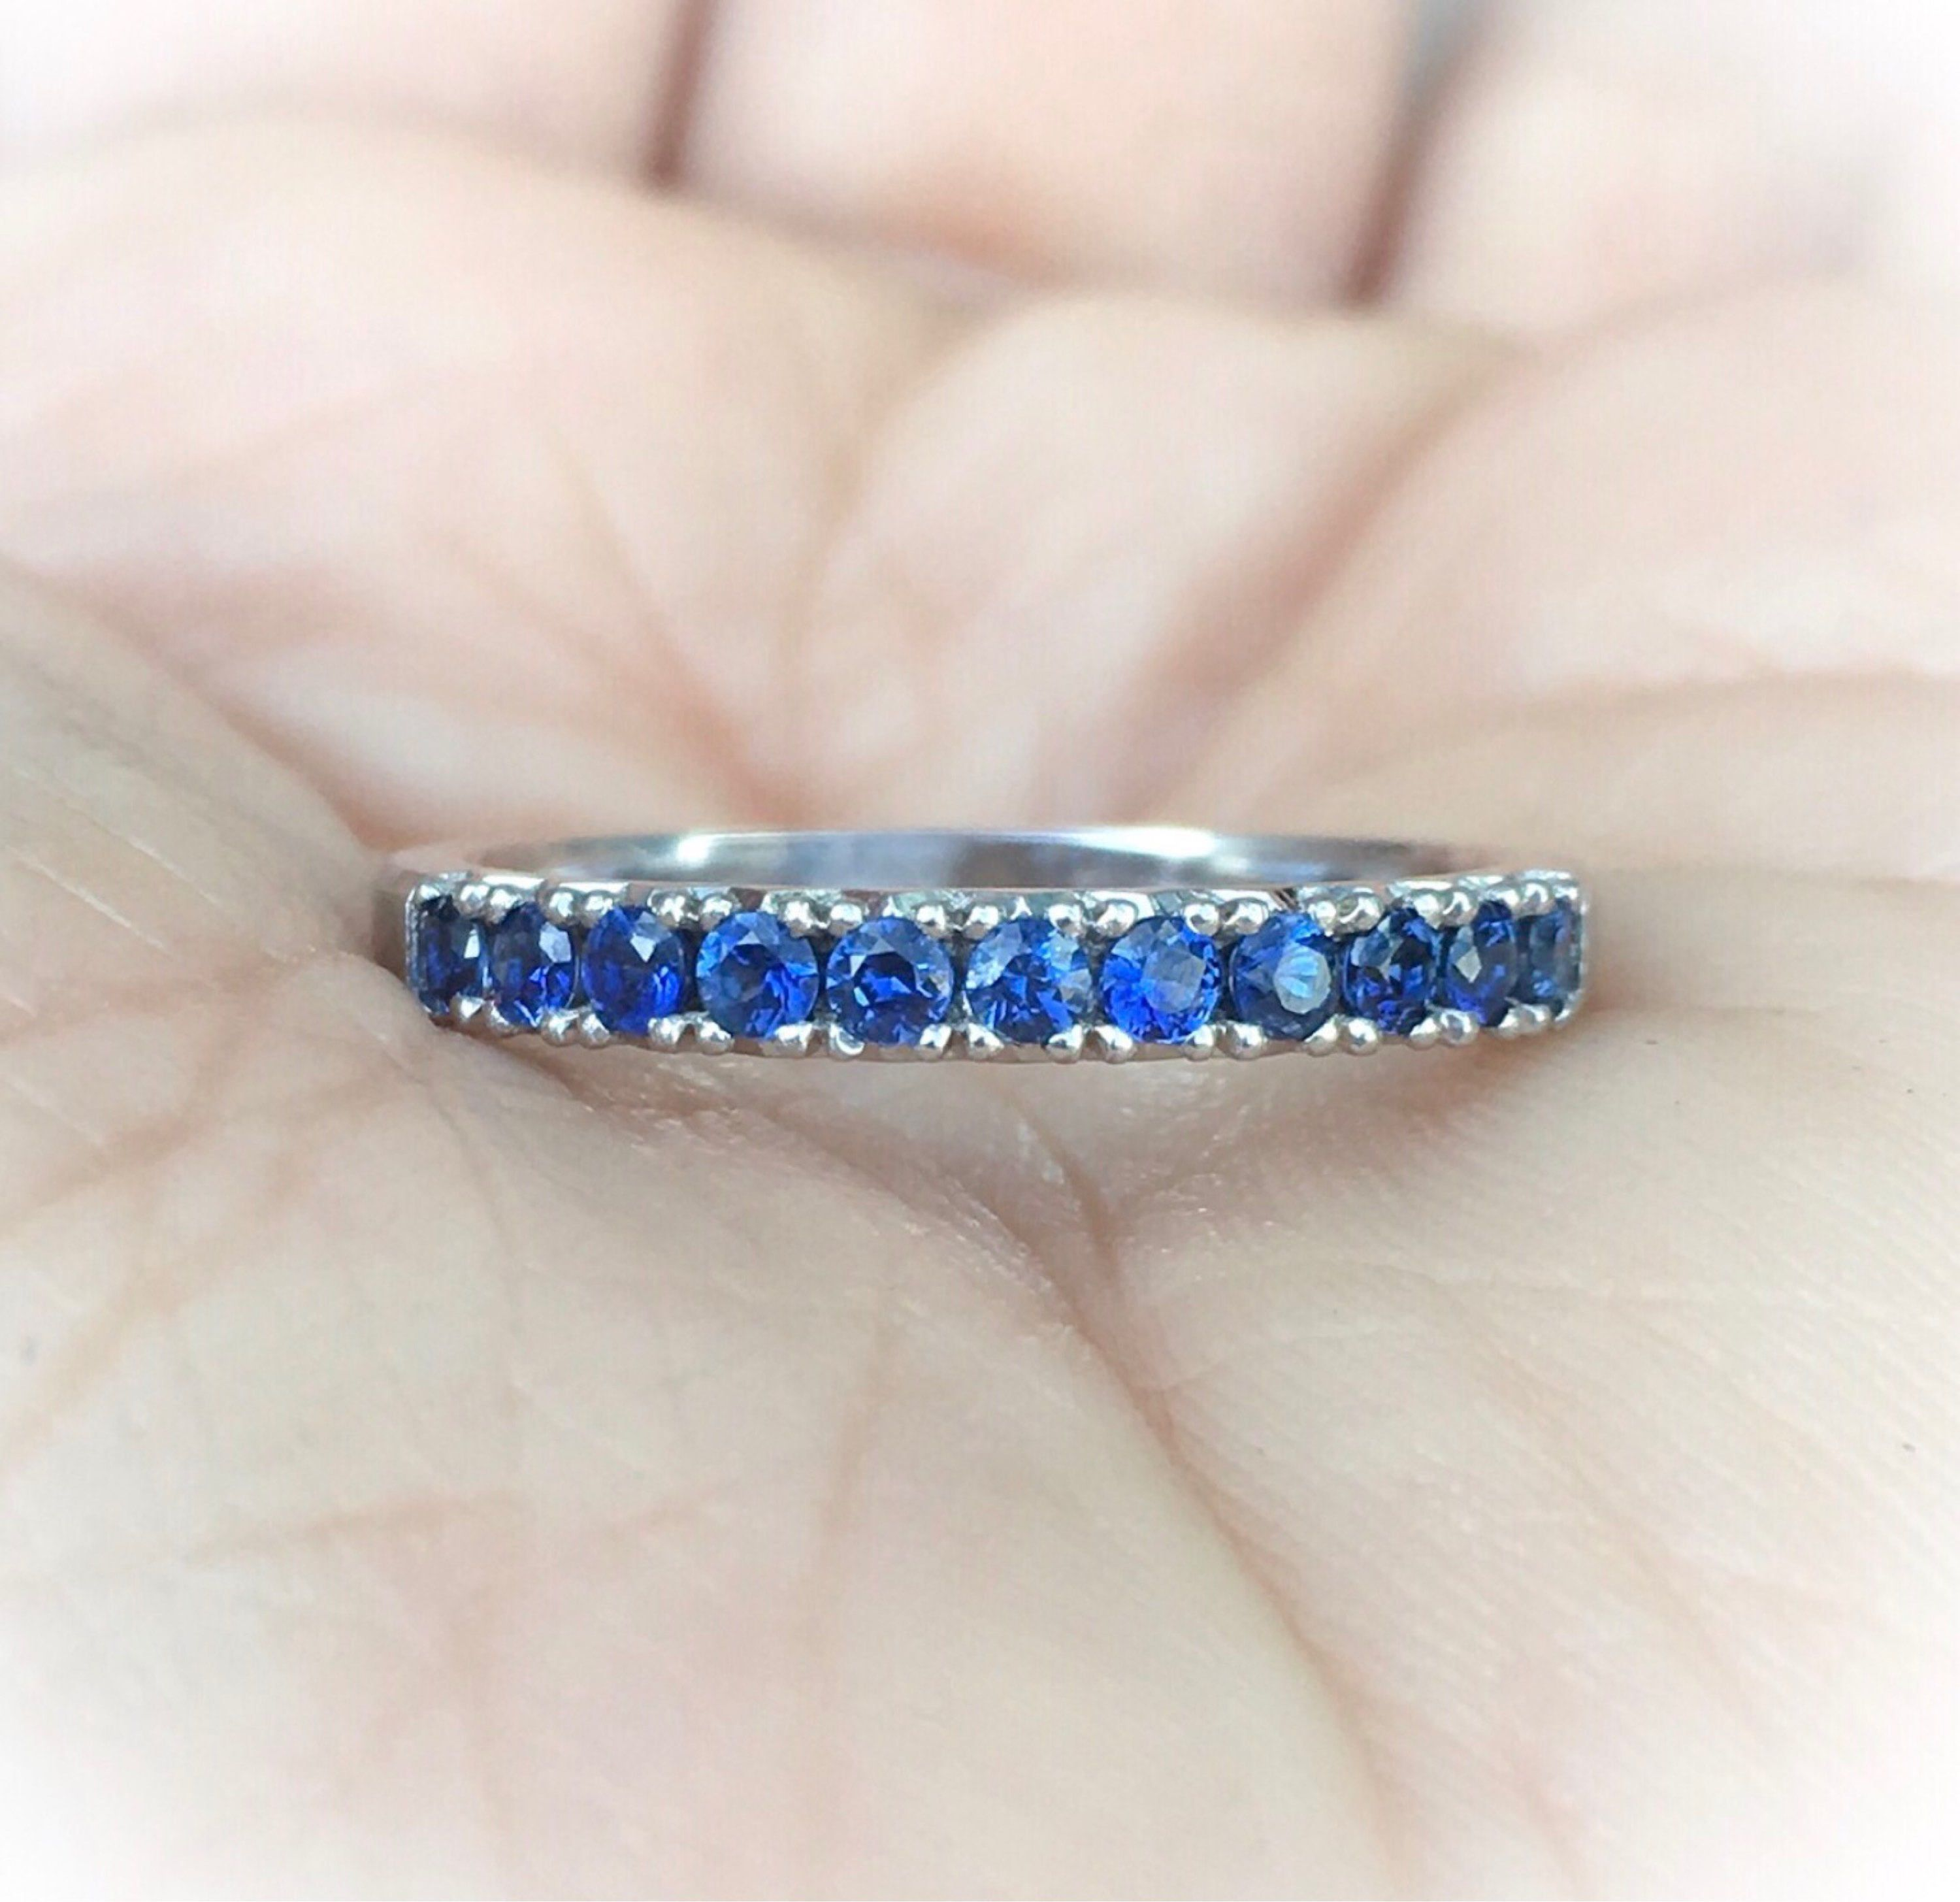 Sapphire Eternity Band 14k Blue Sapphire Ring Matching Eternity Band Sapphire French Pave Prong Set Infinity Band Birthstone Stack Ring Sapphire Eternity Band Blue Sapphire Rings Gemstone Engagement Rings